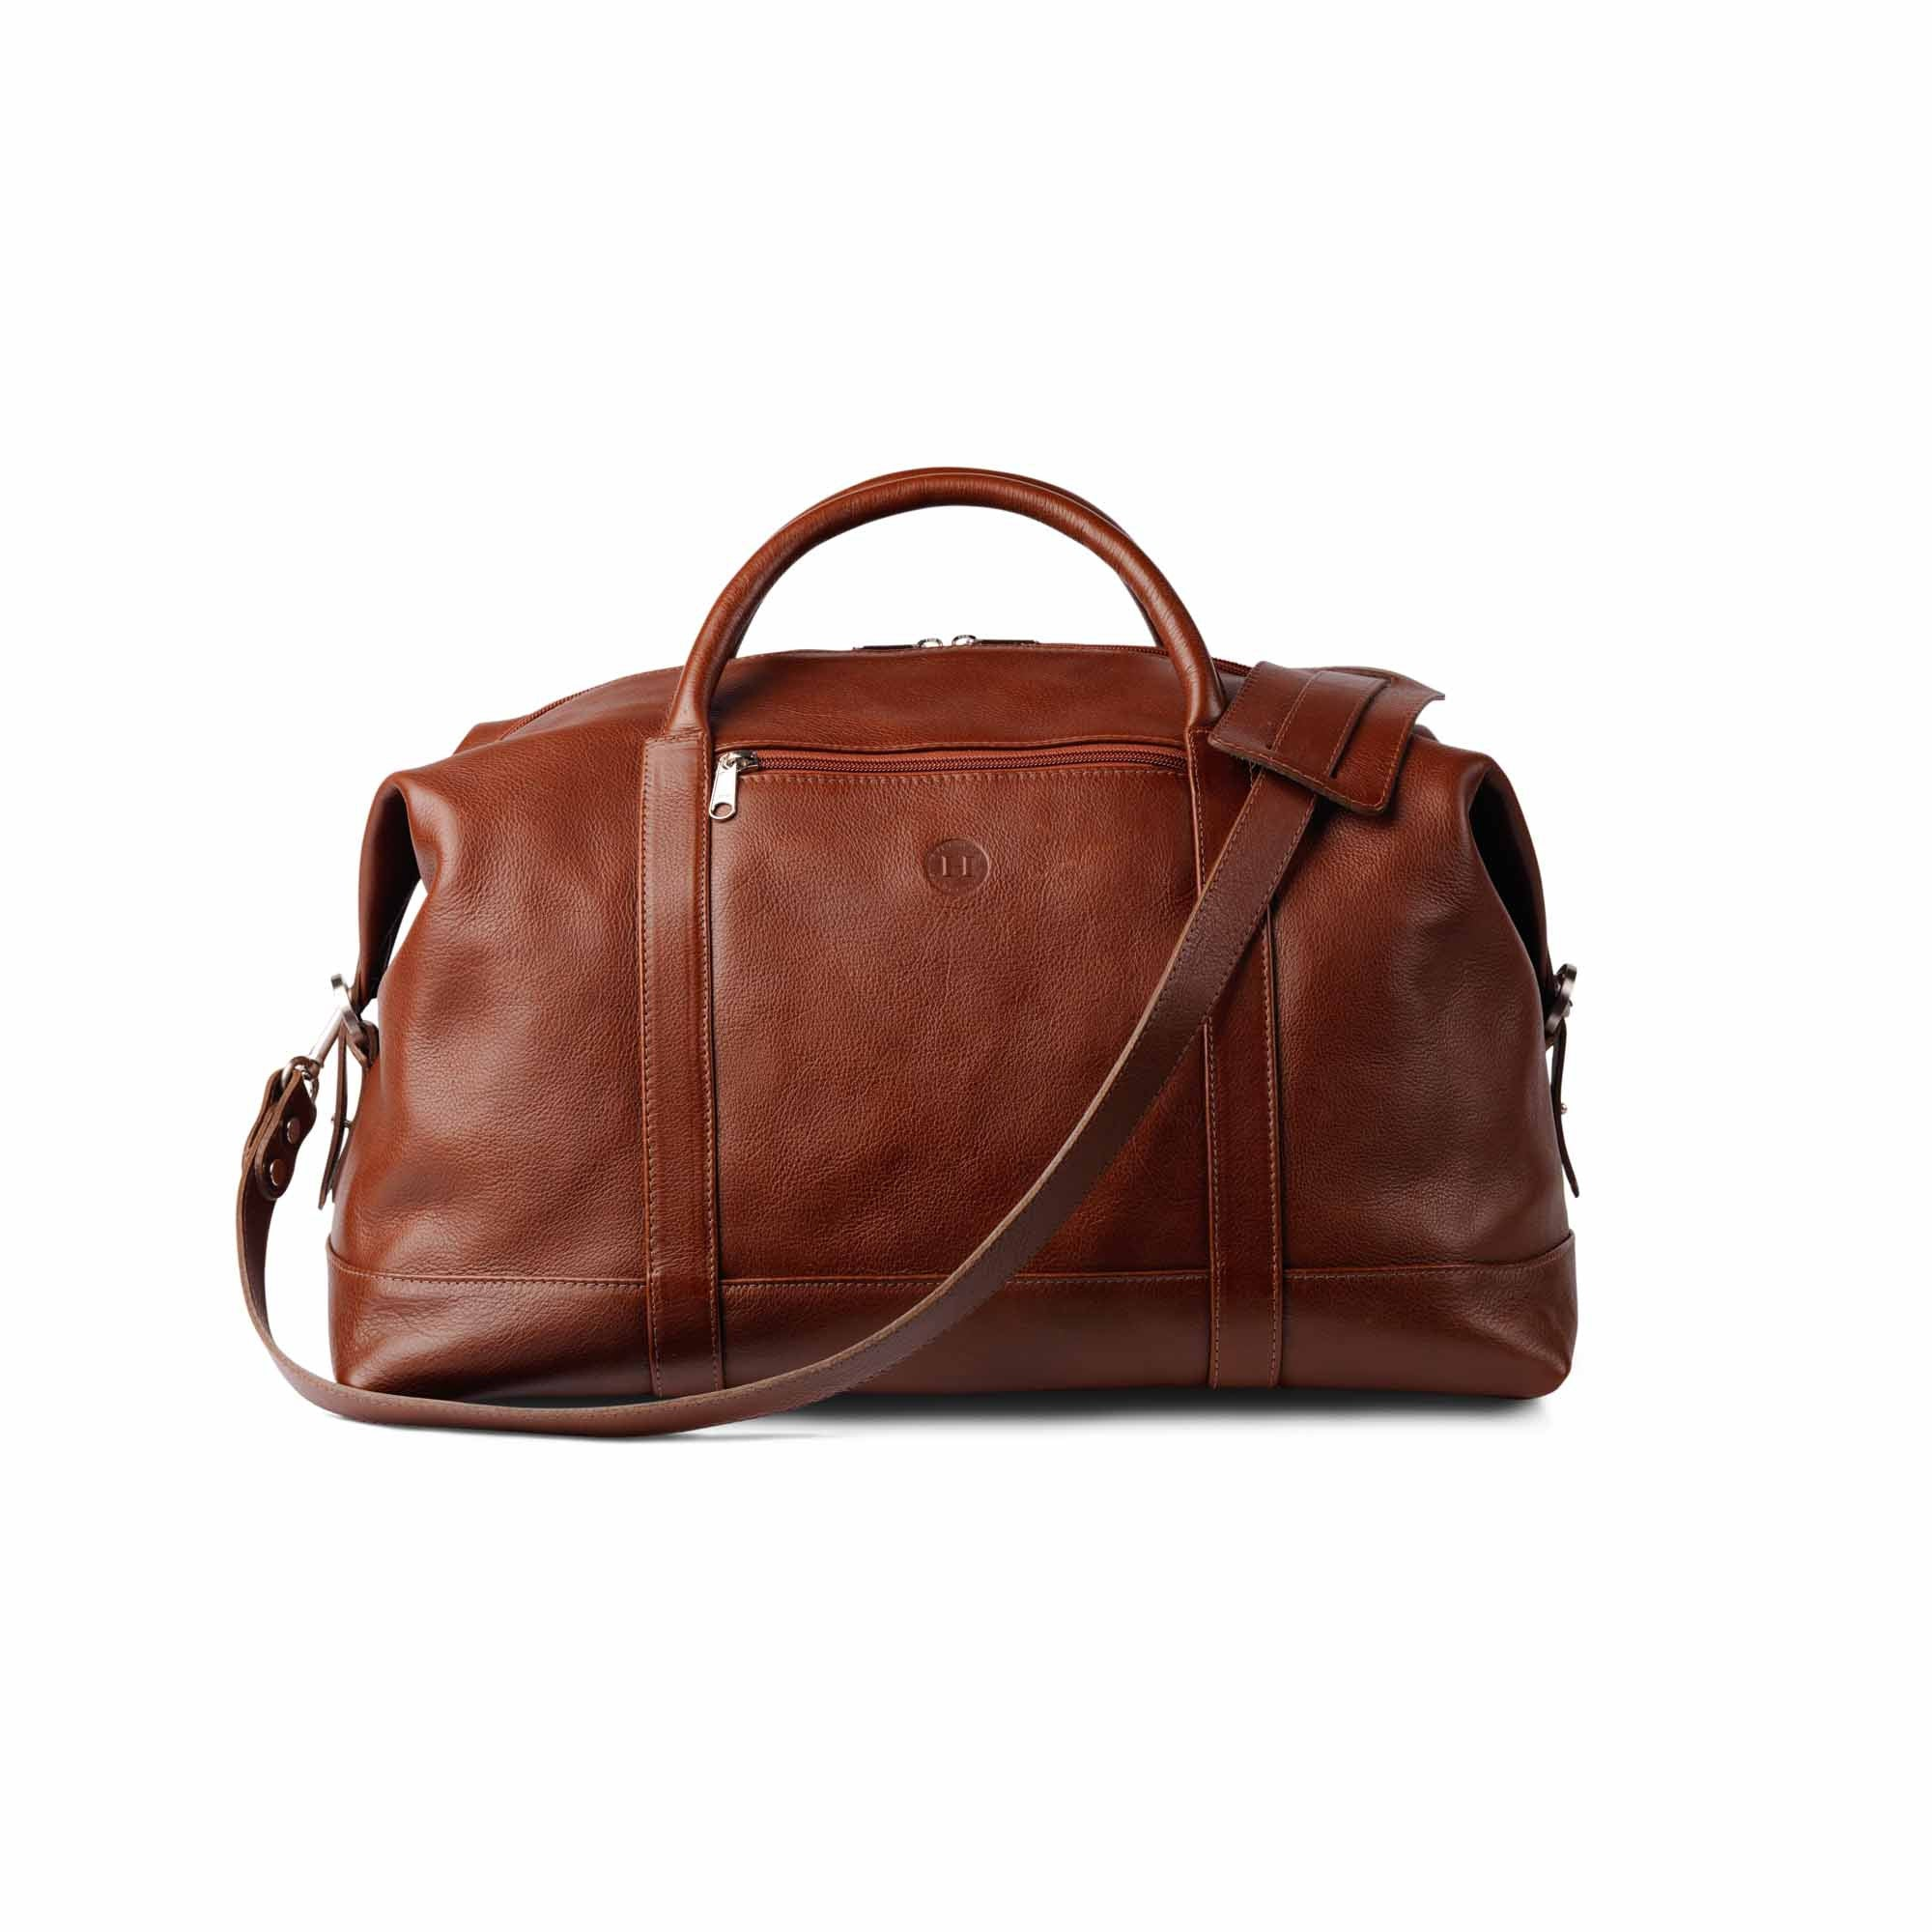 Holden Leather Duffle Travel Bag Chestnut - Holden Leathergoods, leather bags handmade in Ireland